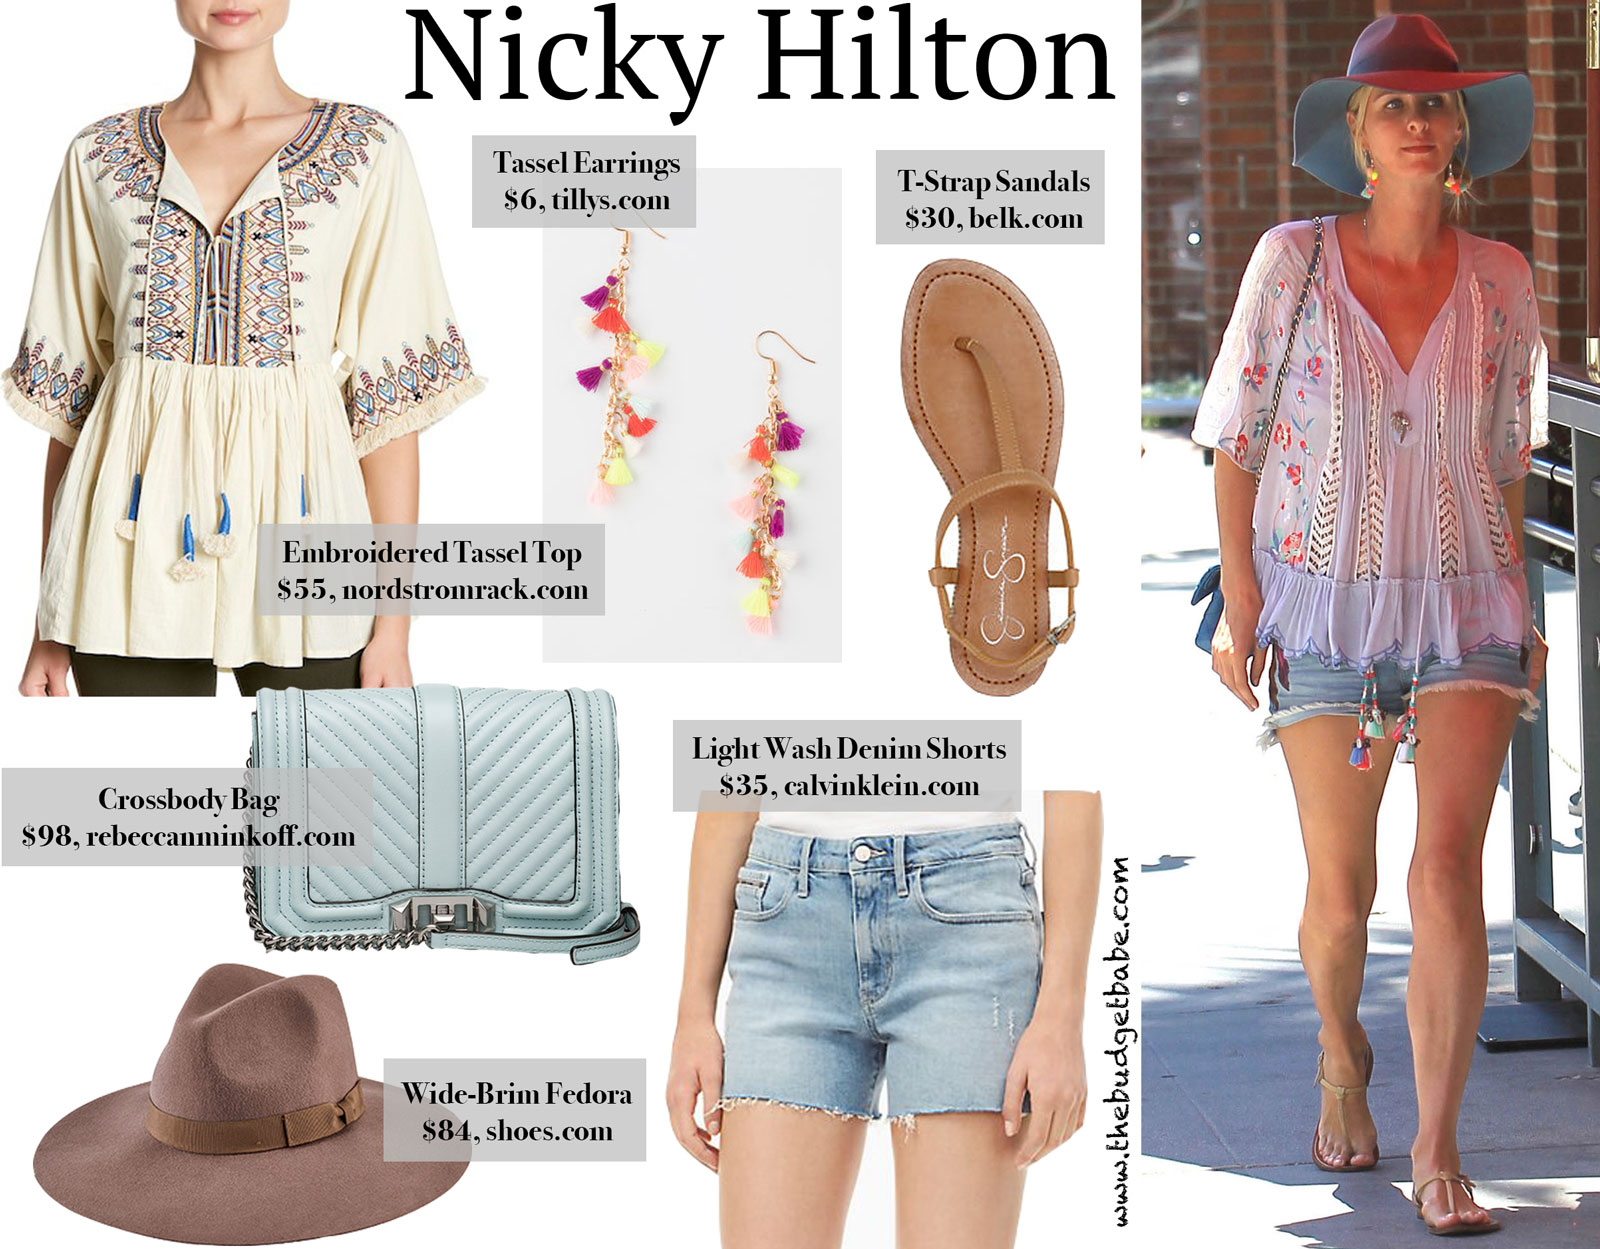 4f0dc01c4aa Nicky Hilton Embroidered Tassel Top Look for Less